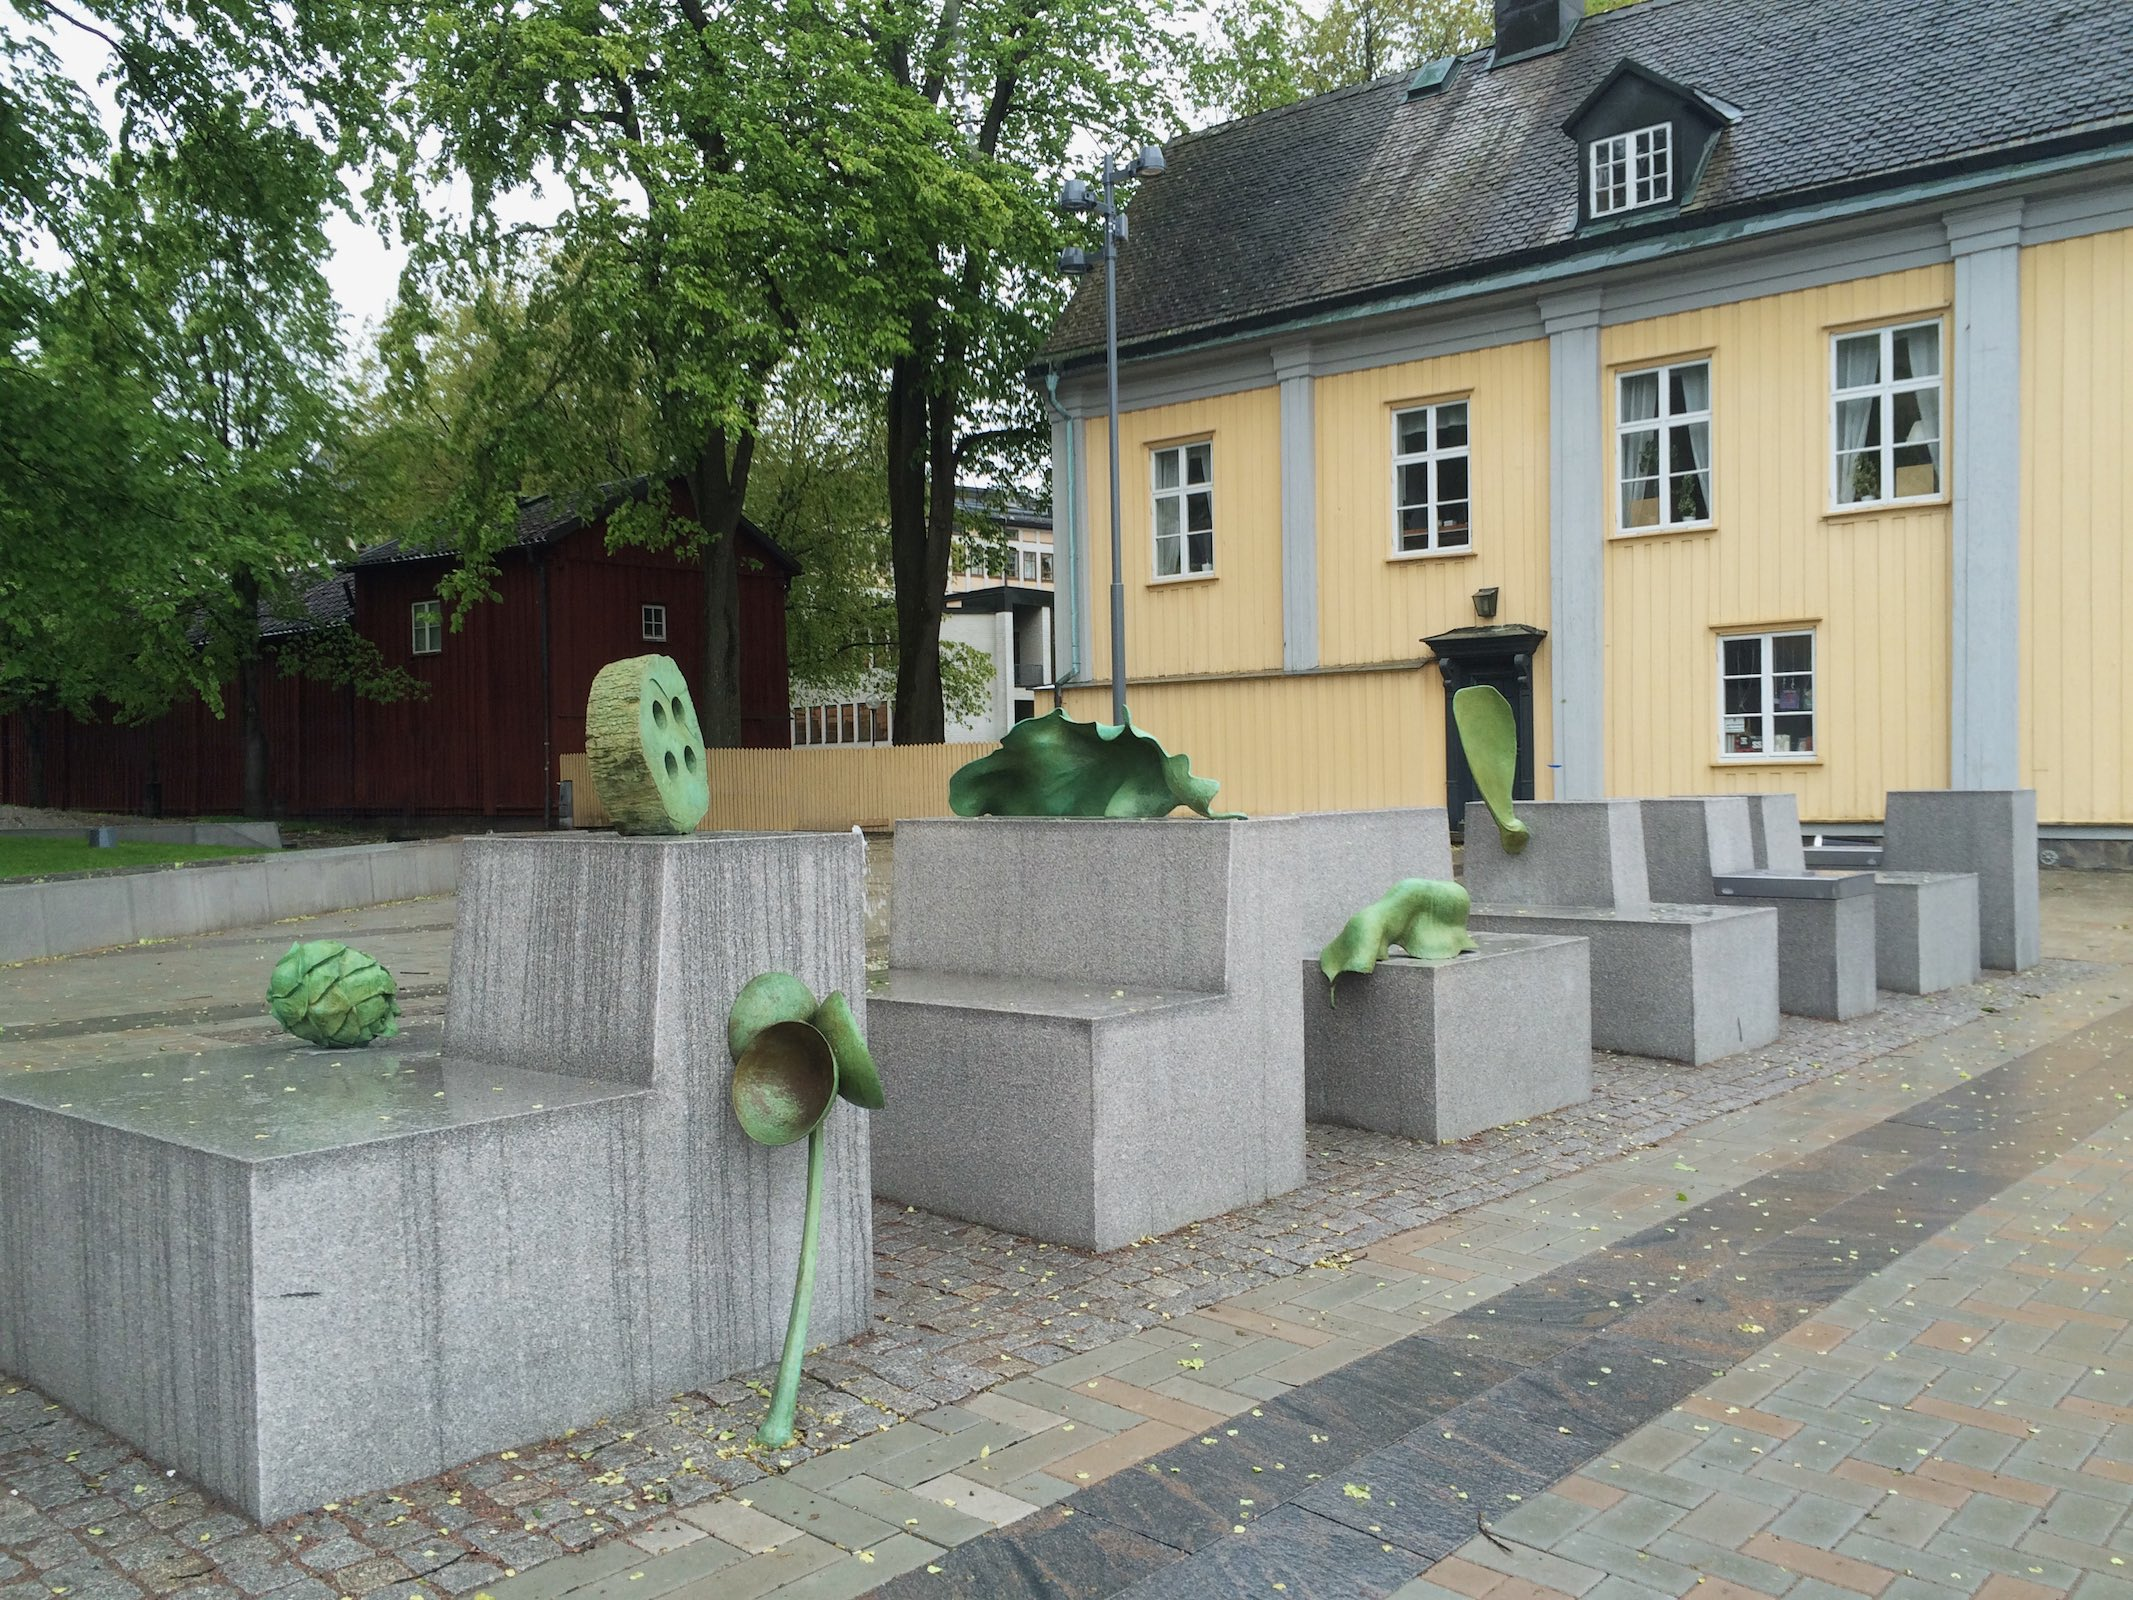 Carl Boutard, River Walk, 2015, comissioned by Karlstad Municipality. A site specific permanent installation in public space consisting of enlarged fragments of nature. In themselves insignificant these minuscule objects were found and carefully chosen by the artist during strolls along the adjacent Klarälven river. One of the bronze sculptures is situated 25 feet up in an elm tree. It was modelled with maple trees cut down while renovating the site.